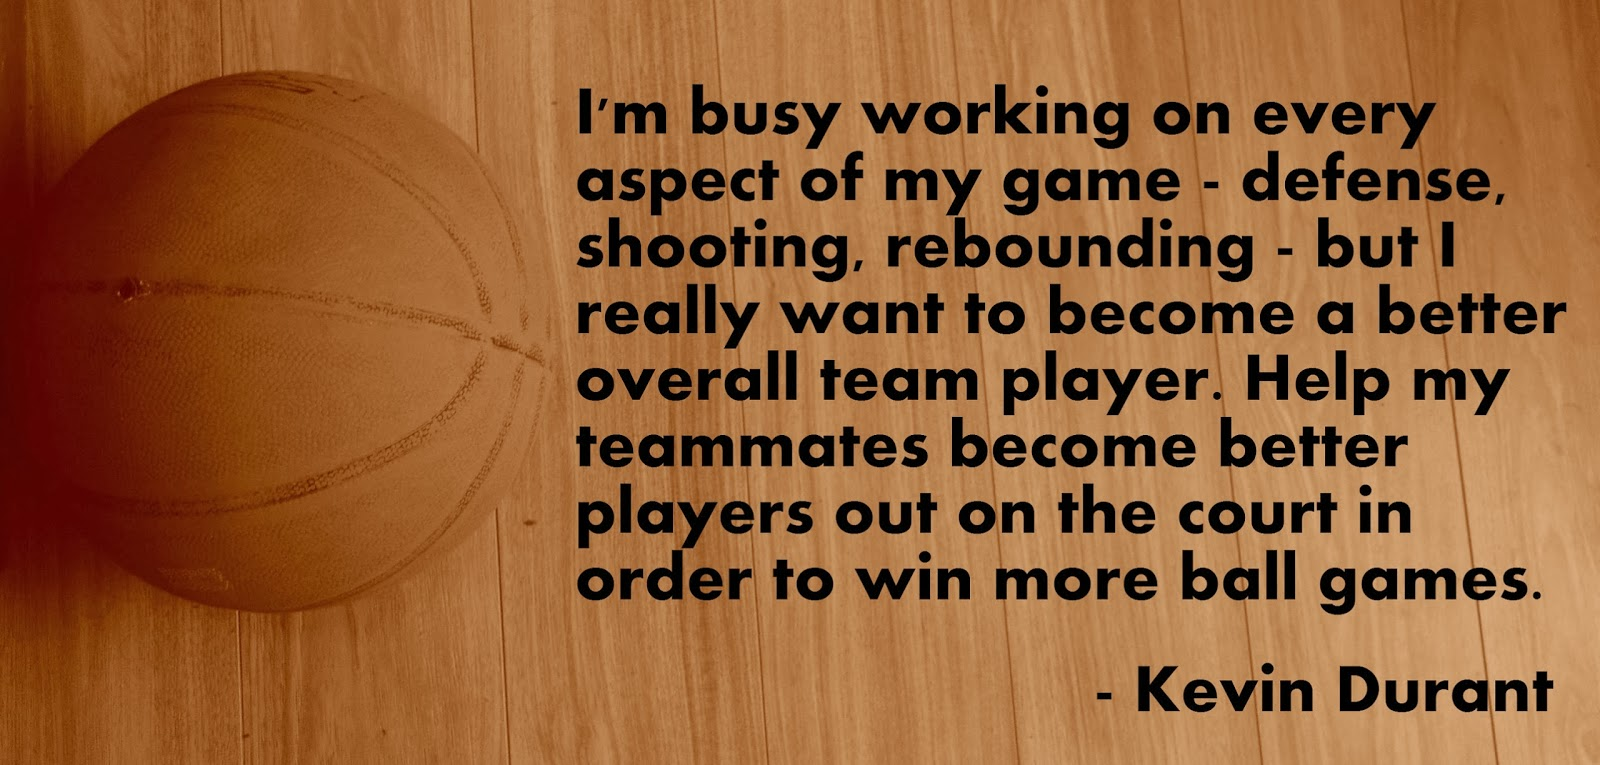 Kevin Durant Quote Motivational Nba Basketball Quotes With Pictures And Images Kevin